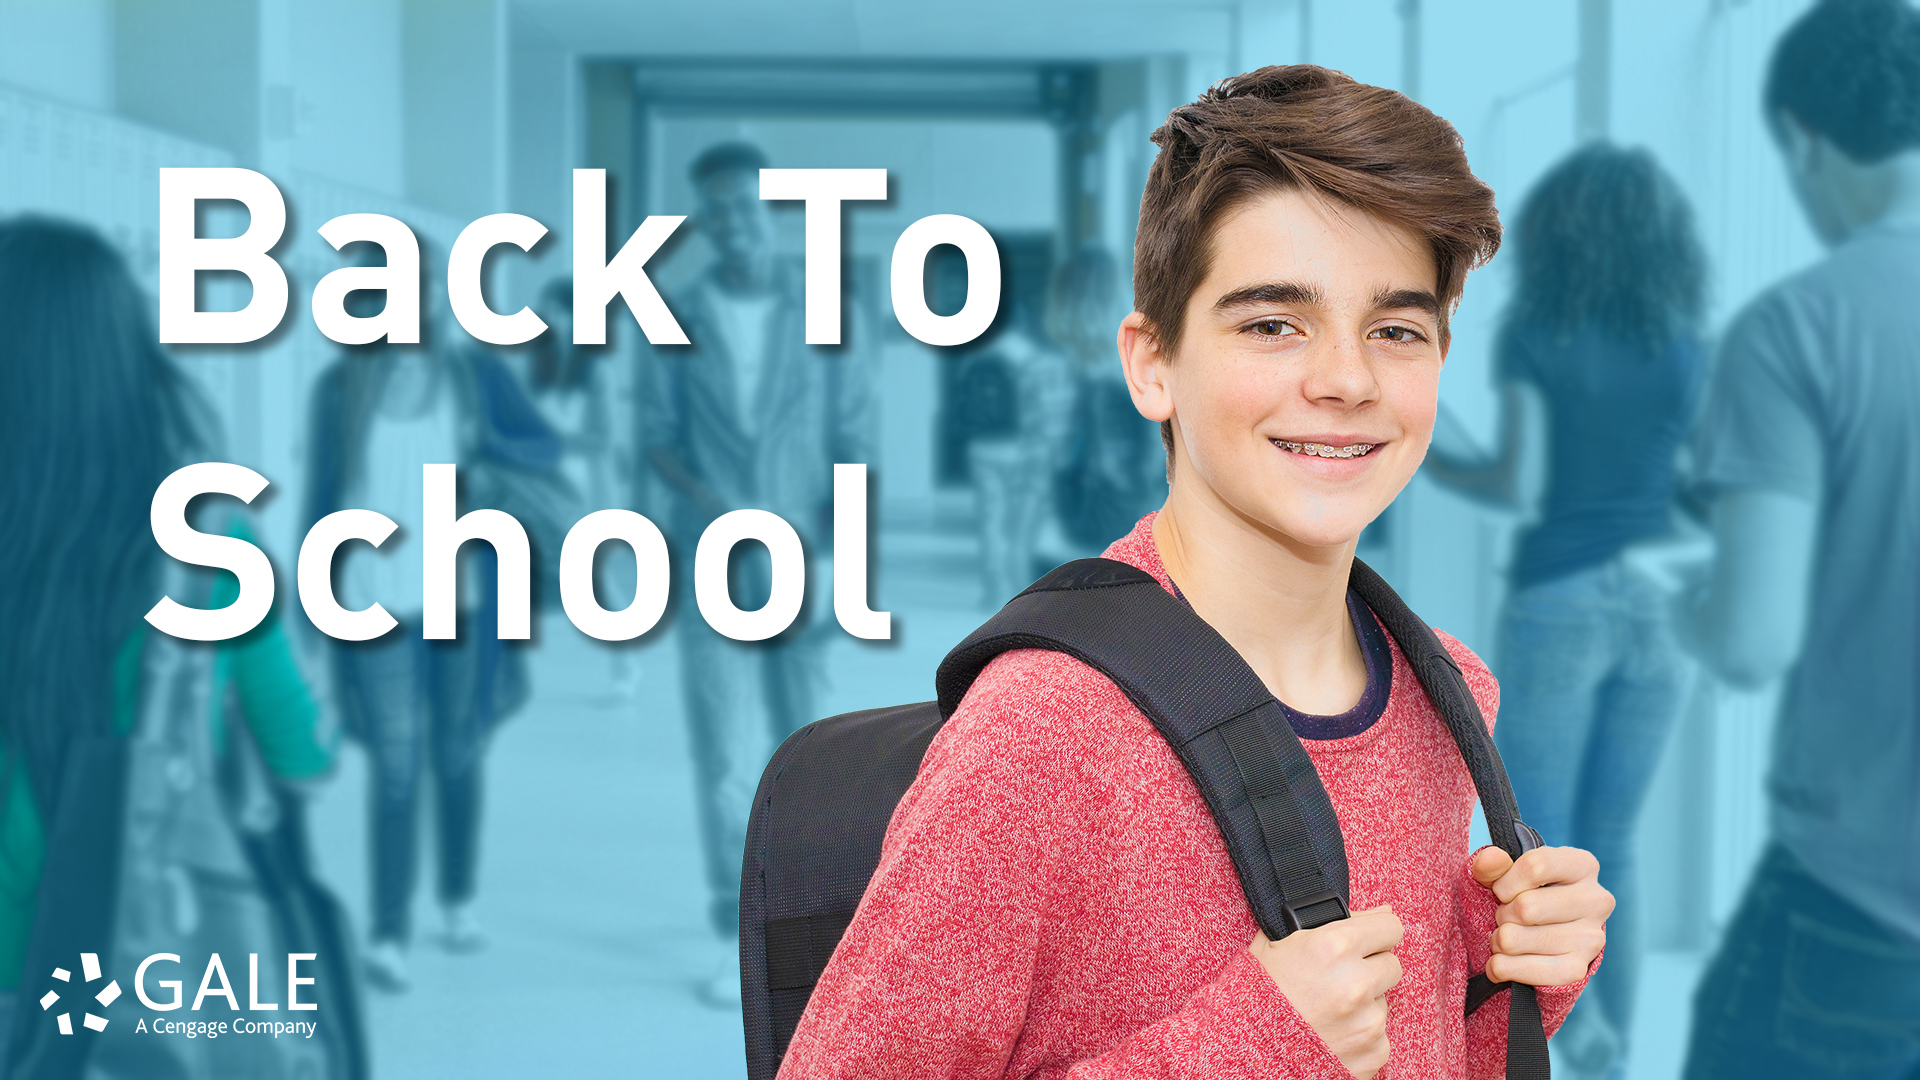 Back To School with MeL Thumbnail